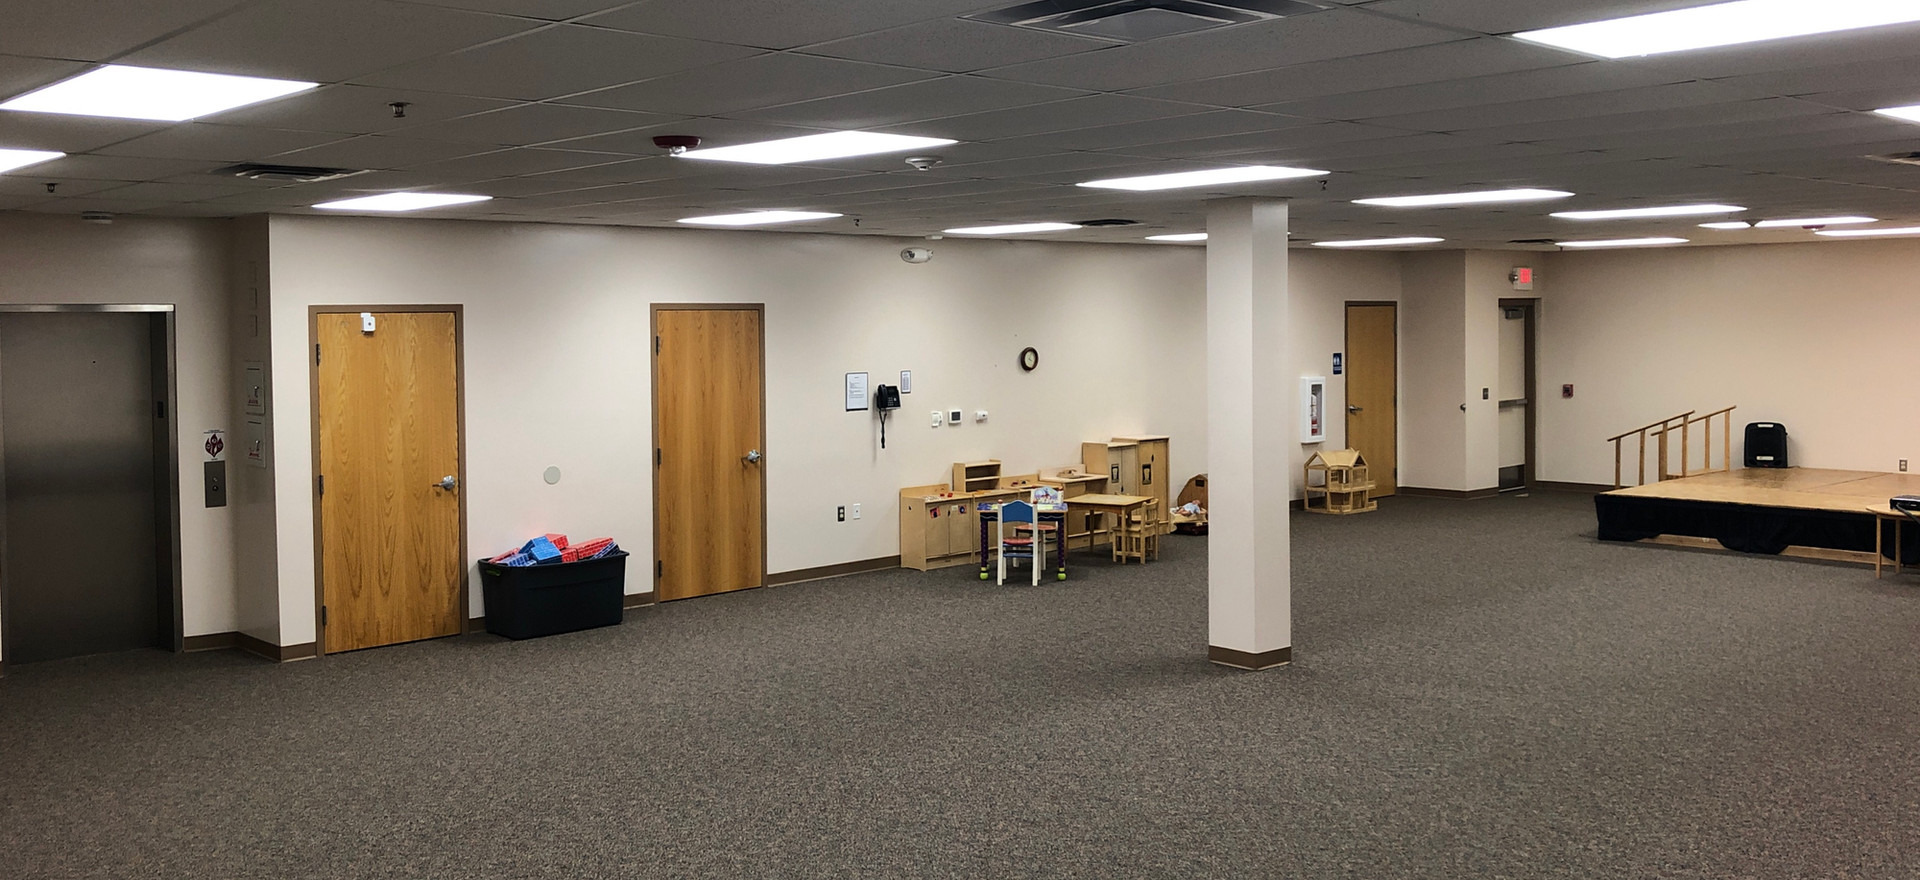 Activity Room and Storm Shelter